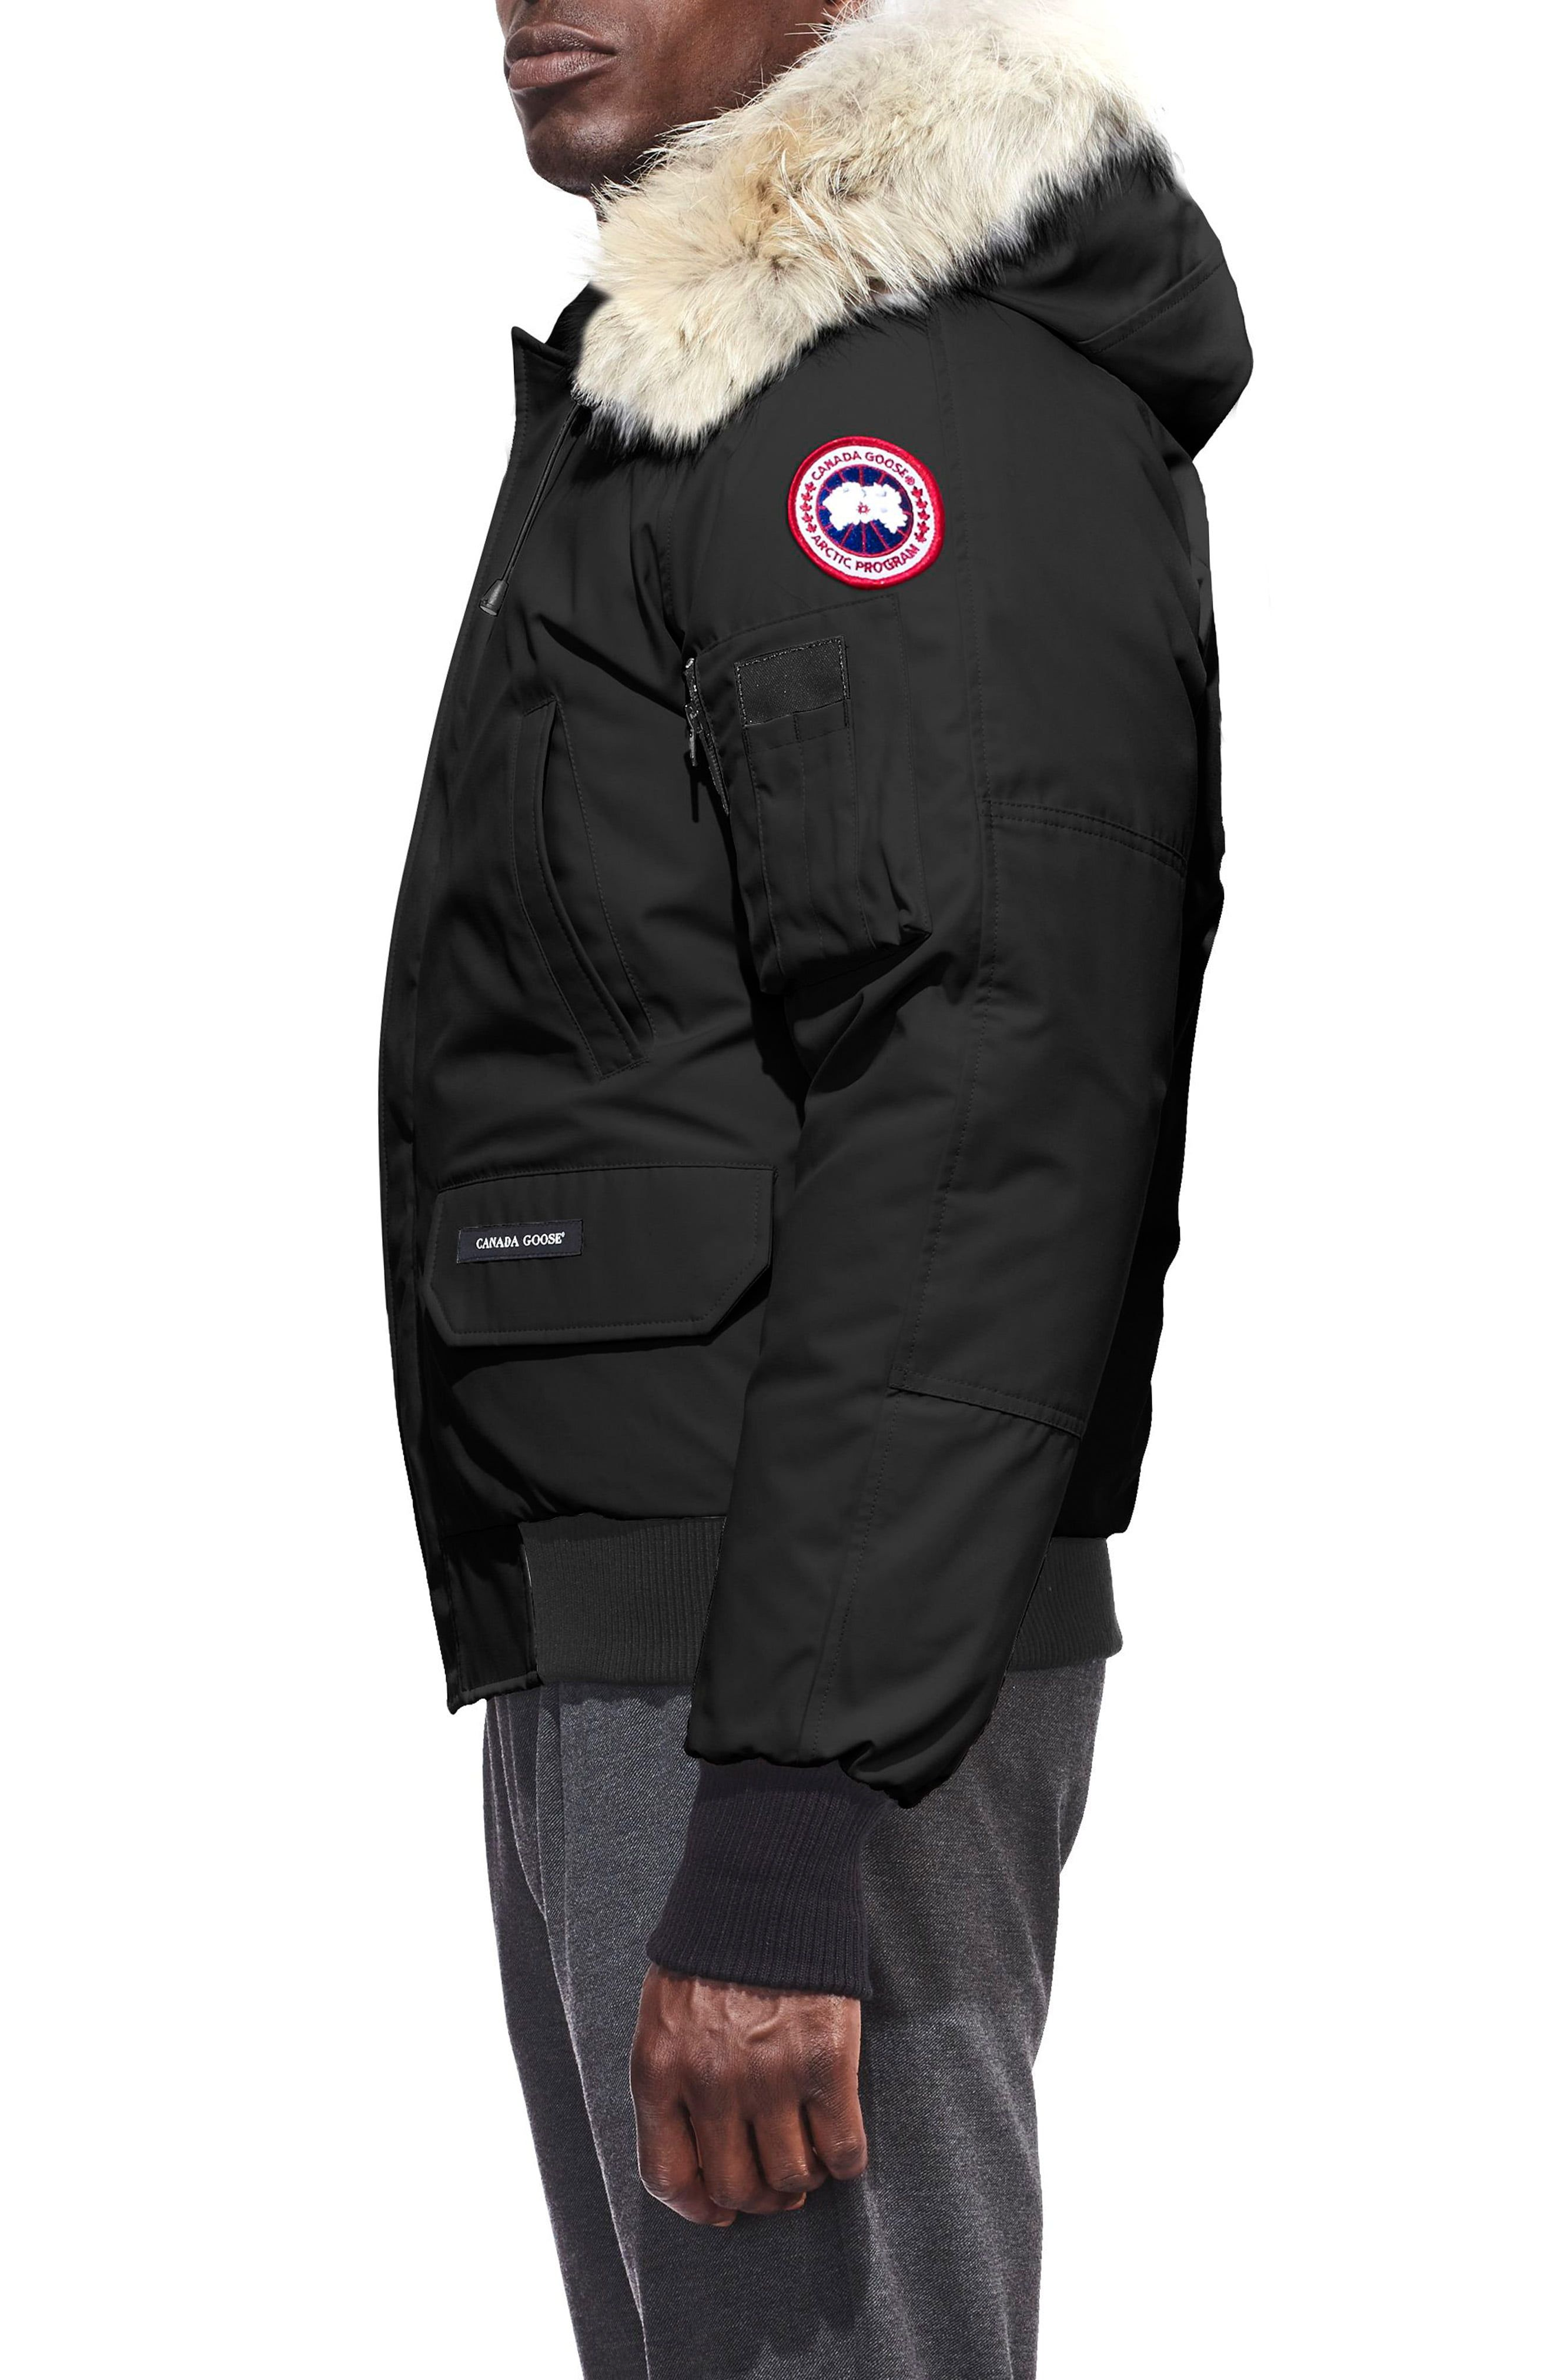 Canada Goose Chilliwack Down Bomber Jacket With Genuine Coyote Fur Trim Nordstrom In 2021 Canada Goose Mens Canada Goose Canada Goose Chilliwack [ 4048 x 2640 Pixel ]